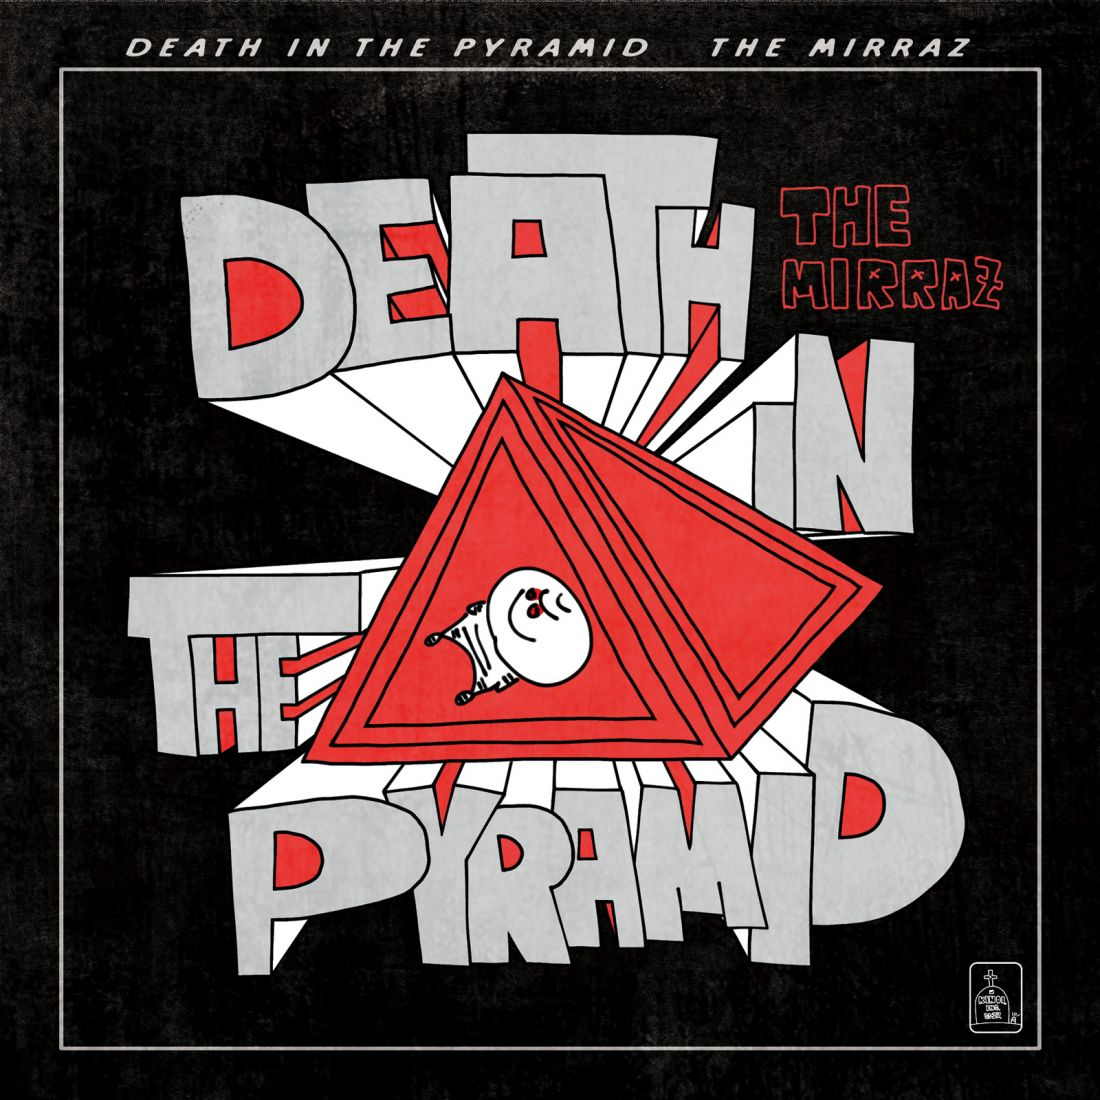 The Mirraz「DEATH IN THE PYRAMID」1223解禁